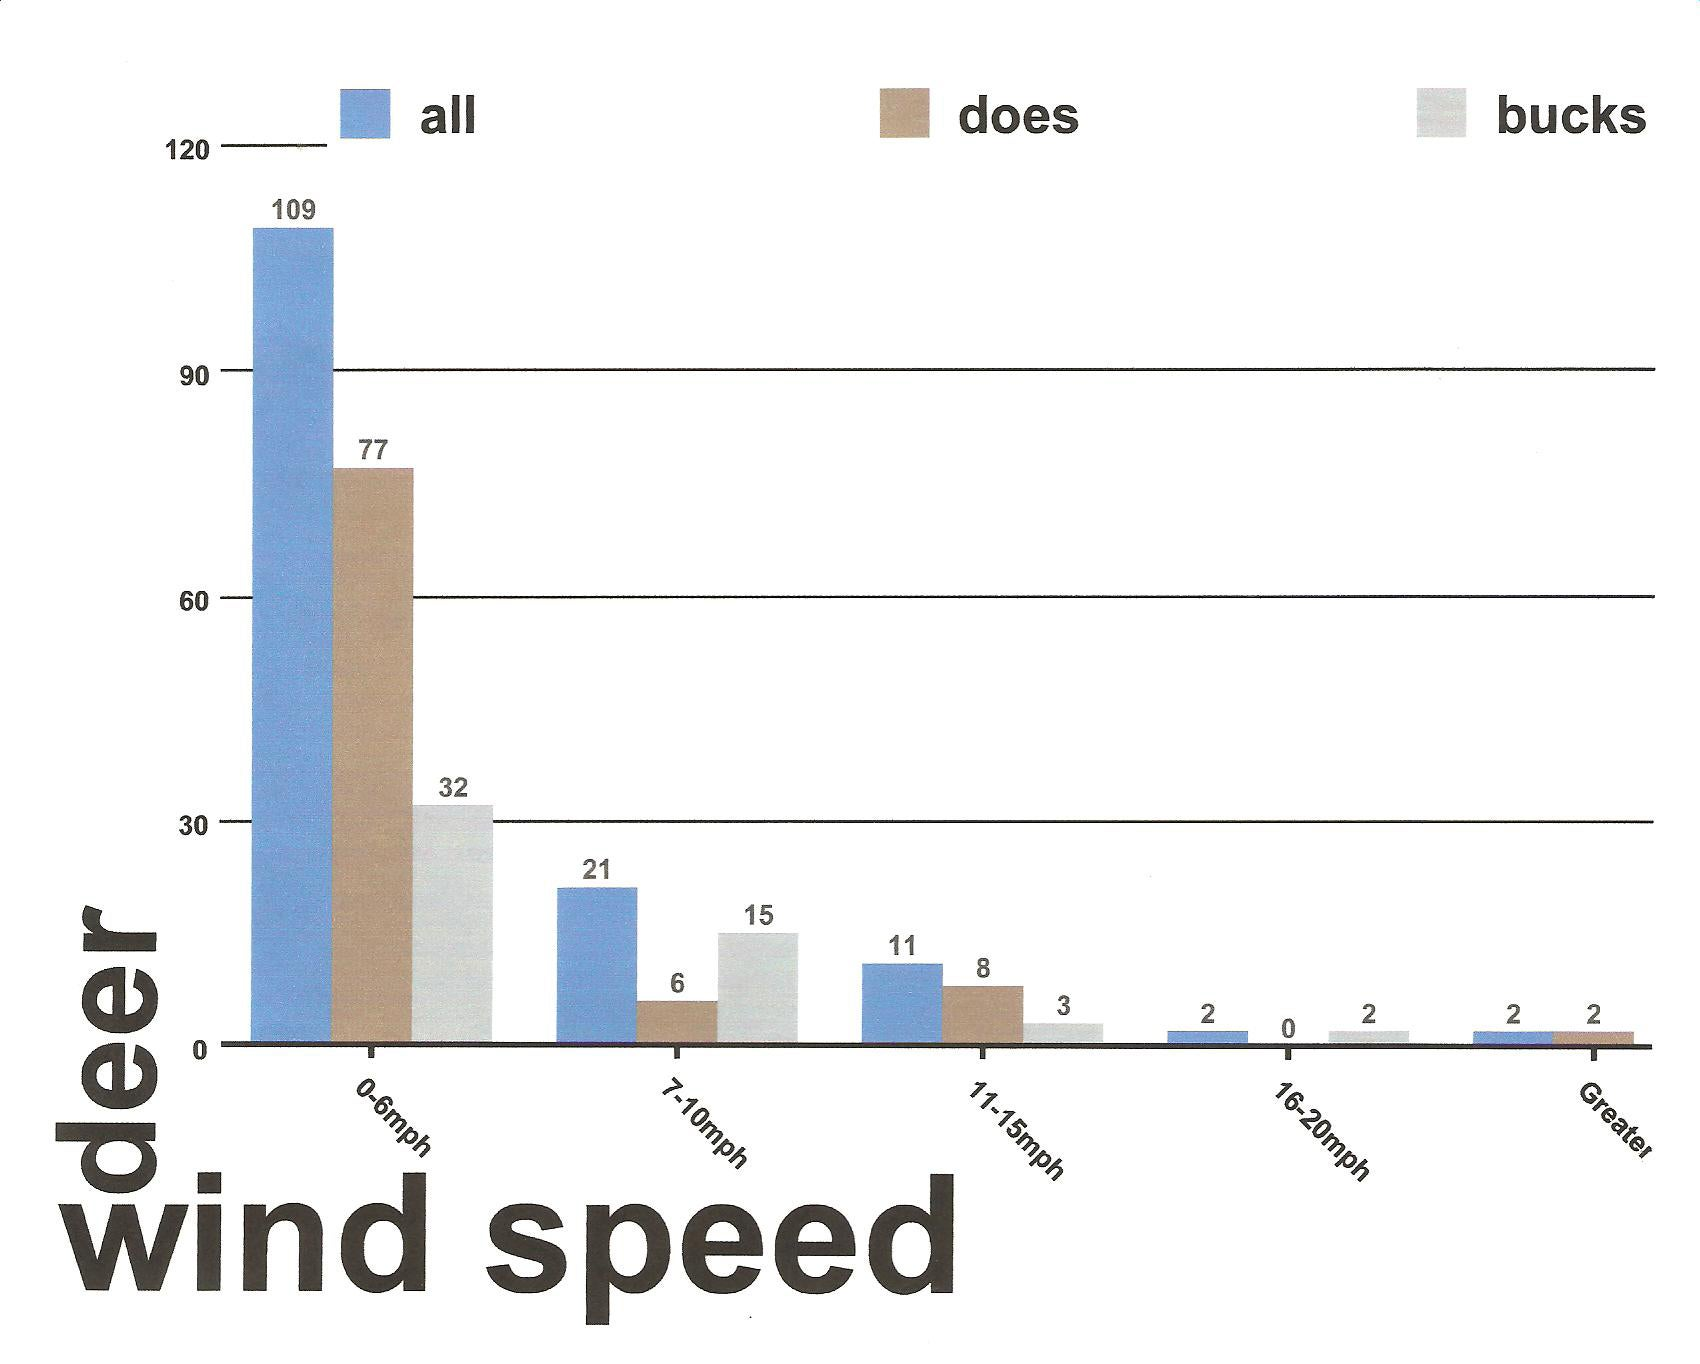 Wind Speed and Buck Movement